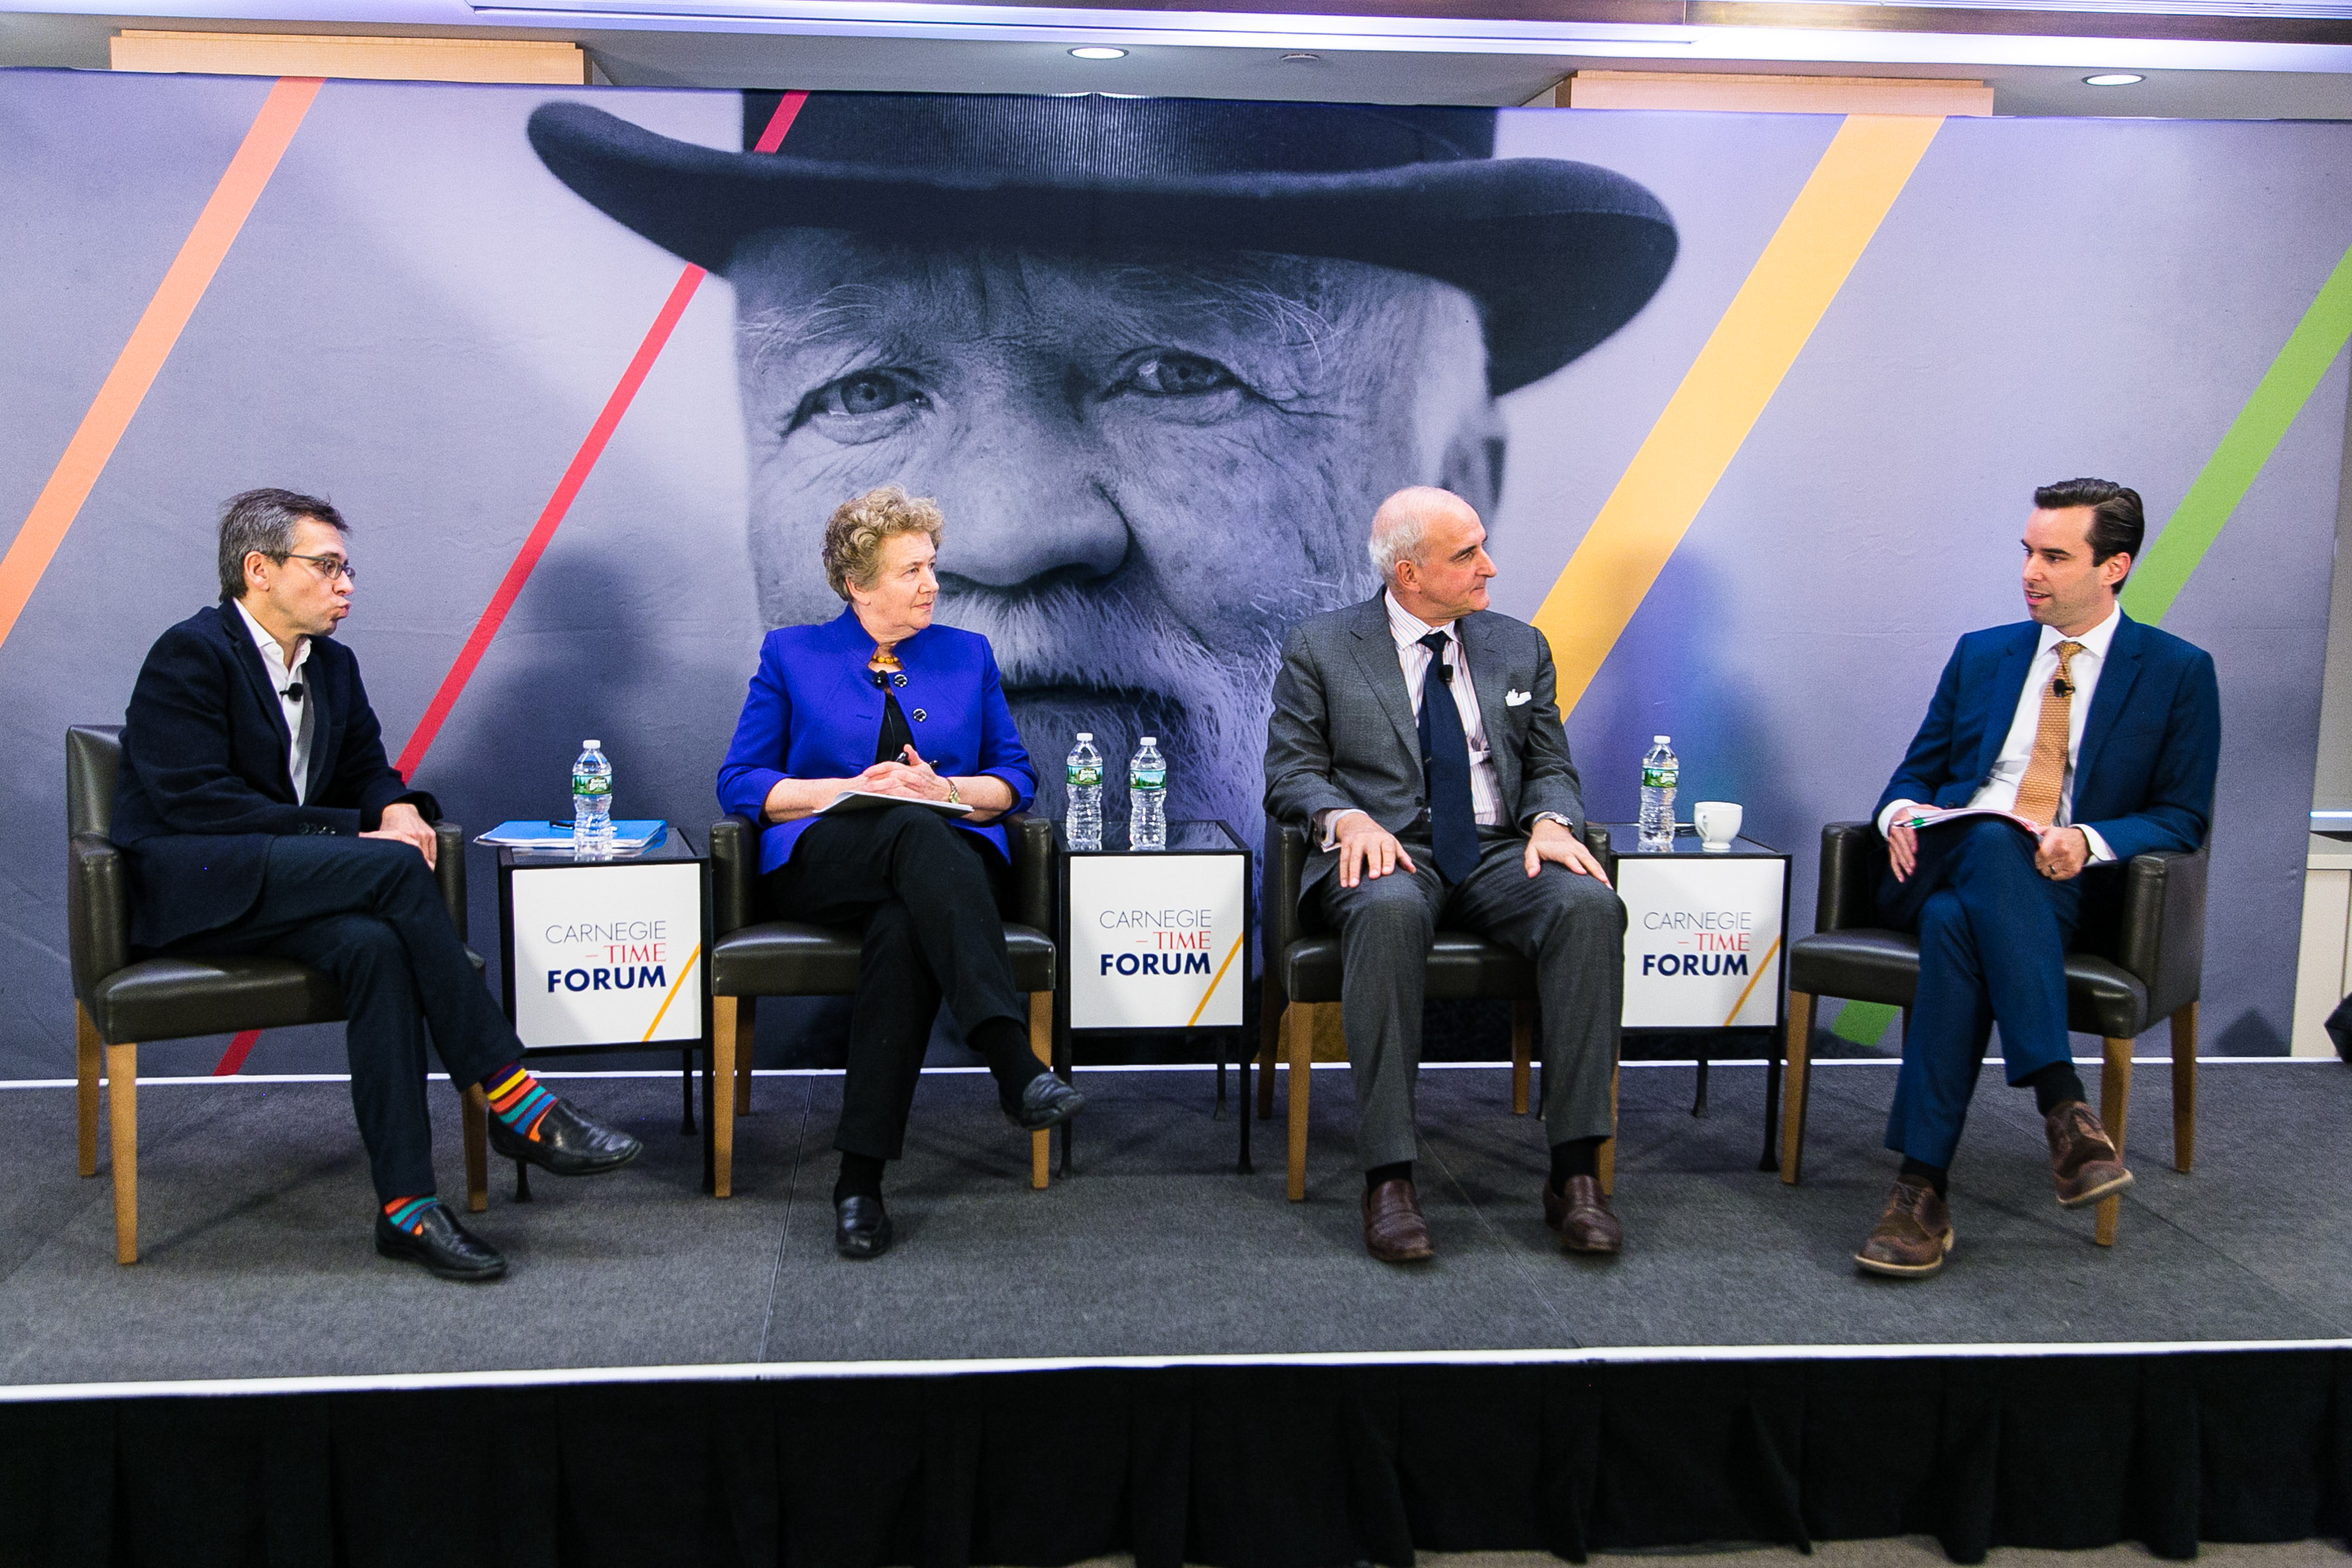 Ian Bremmer, Pippa Norris, Roger Cohen and Michael Scherer discuss populism during the Carnegie Corporation-TIME forum on Feb. 7, 2017.